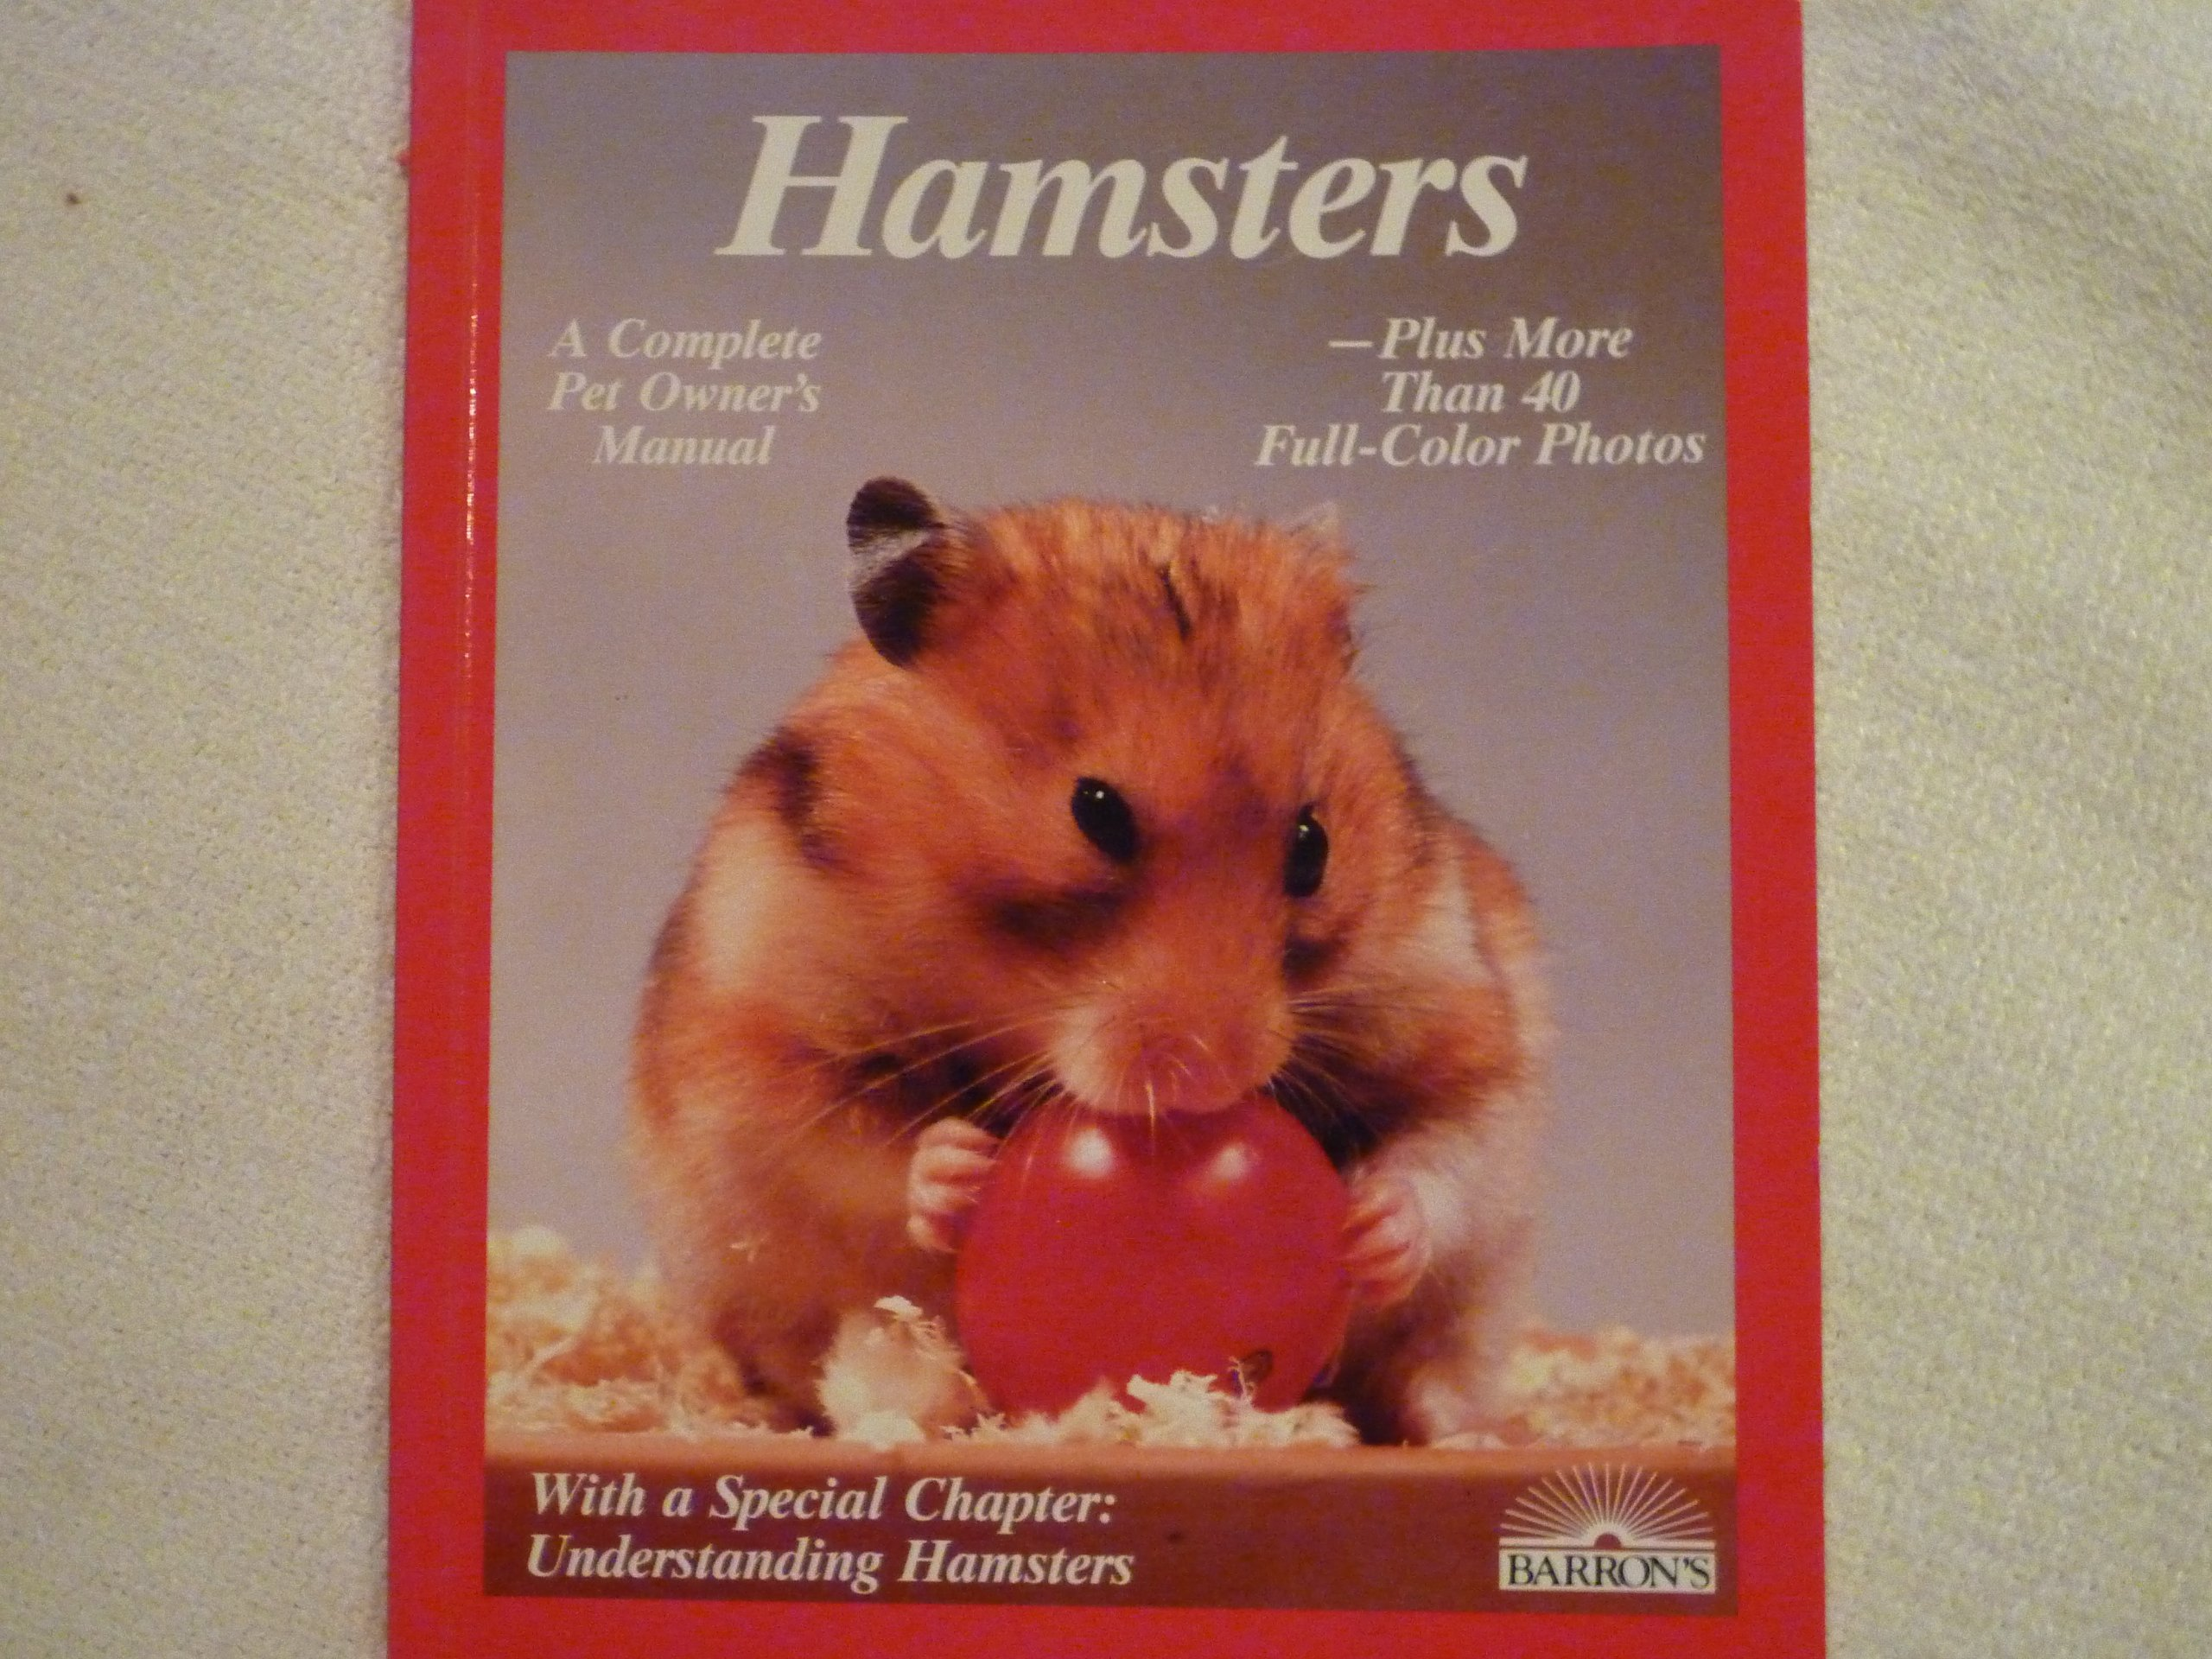 Buy Hamsters: A Complete Pet Owner's Manual Book Online at Low Prices in  India | Hamsters: A Complete Pet Owner's Manual Reviews & Ratings -  Amazon.in